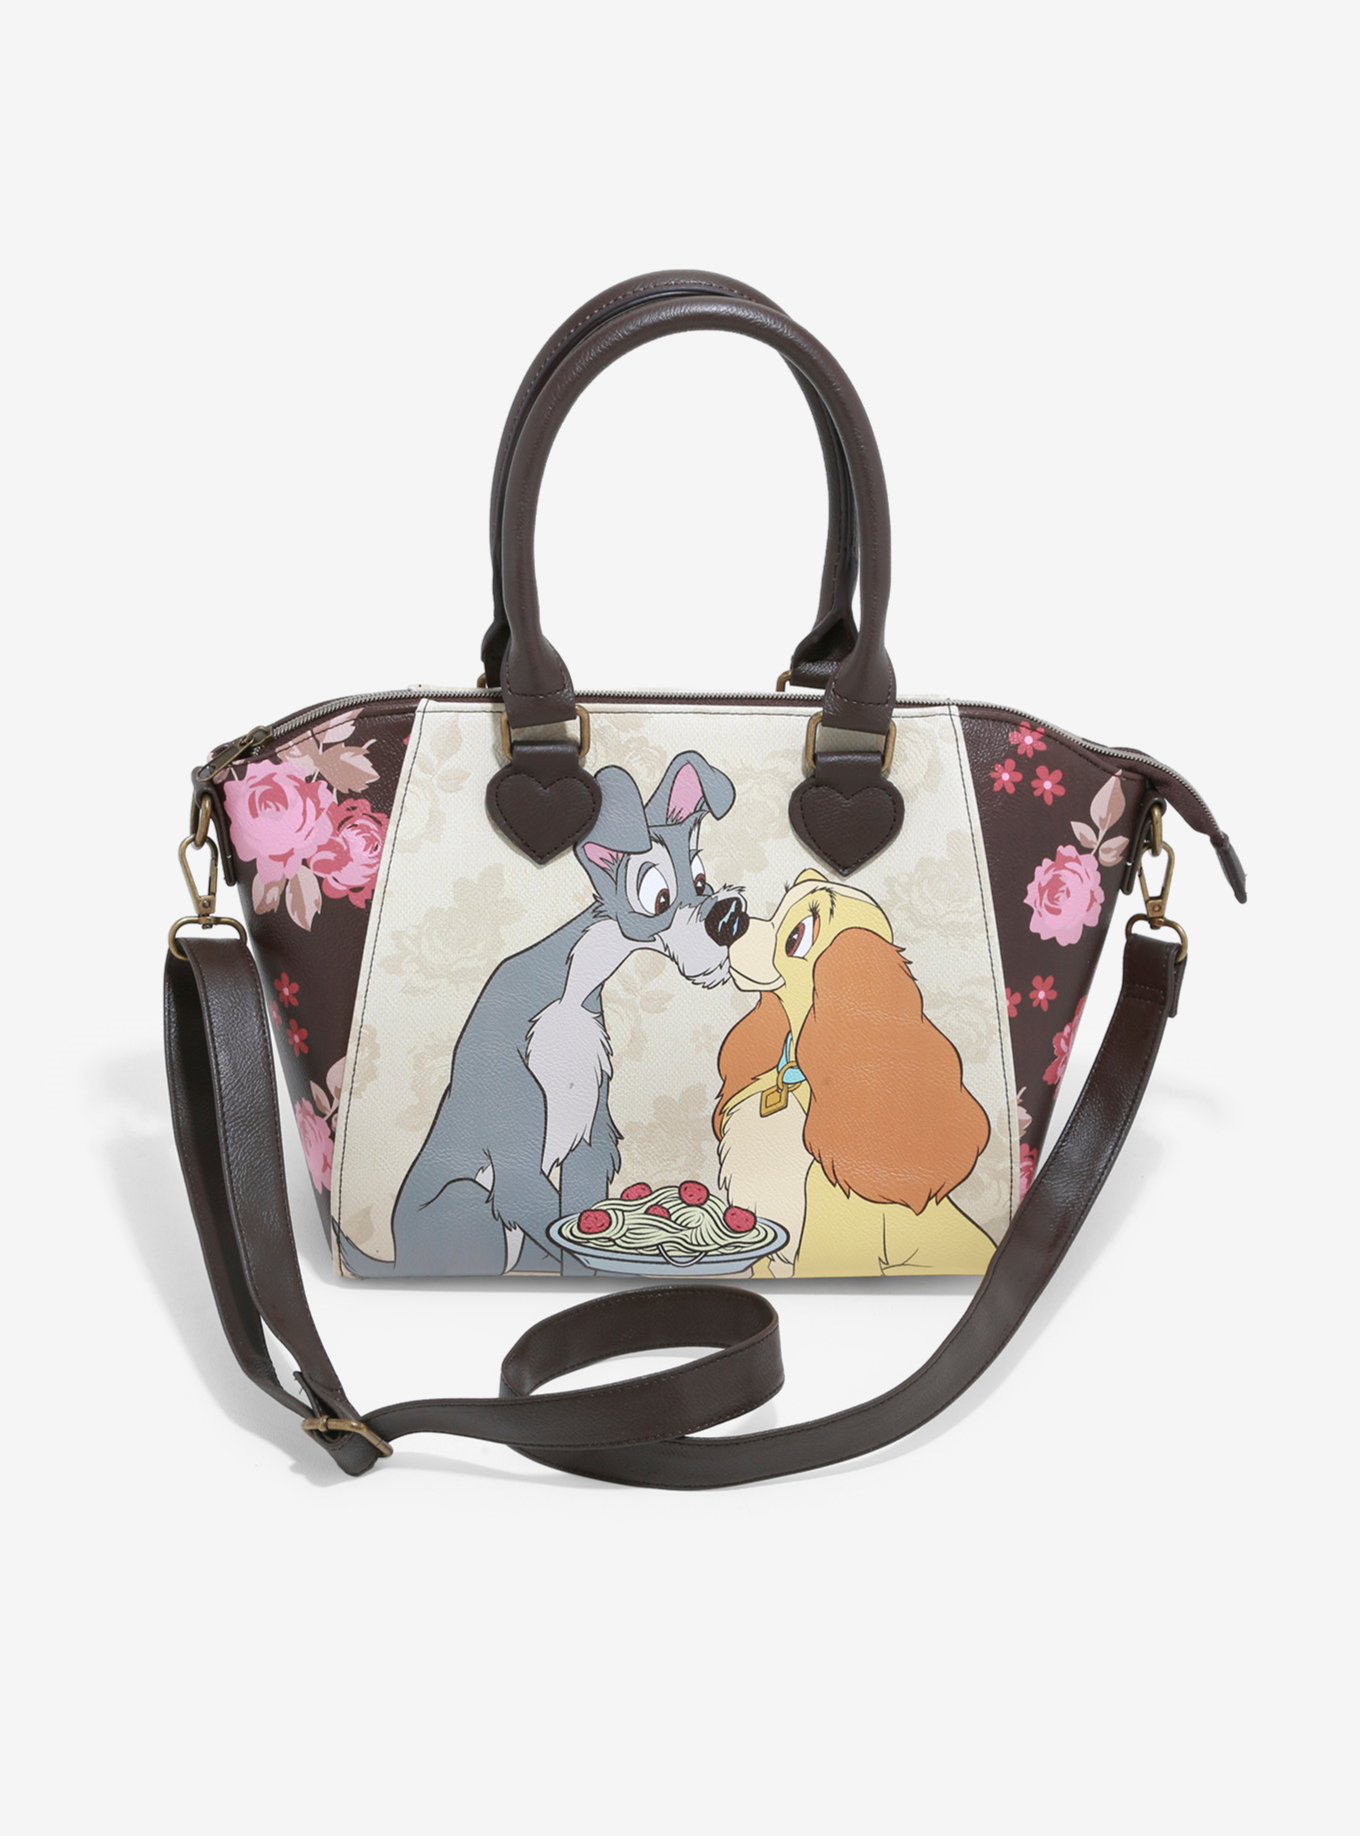 LOUNGEFLY DISNEY LADY & THE TRAMP FLORAL SATCHEL BAG